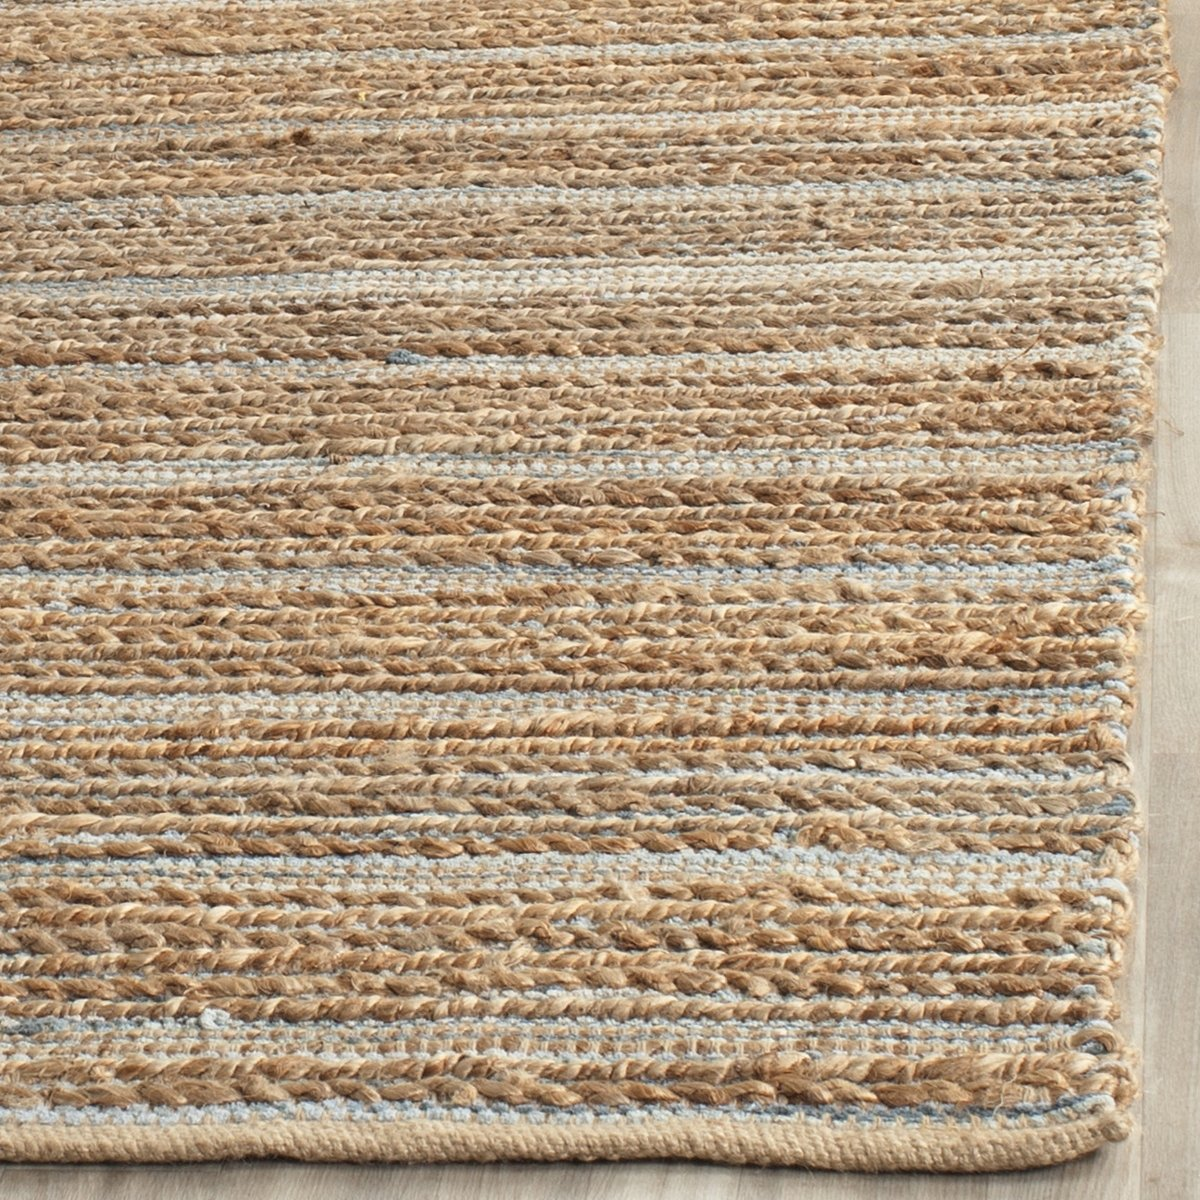 Safavieh Cape Cod Collection CAP851B Hand Woven Blue Jute and Cotton Area Rug (2' x 3') by Safavieh